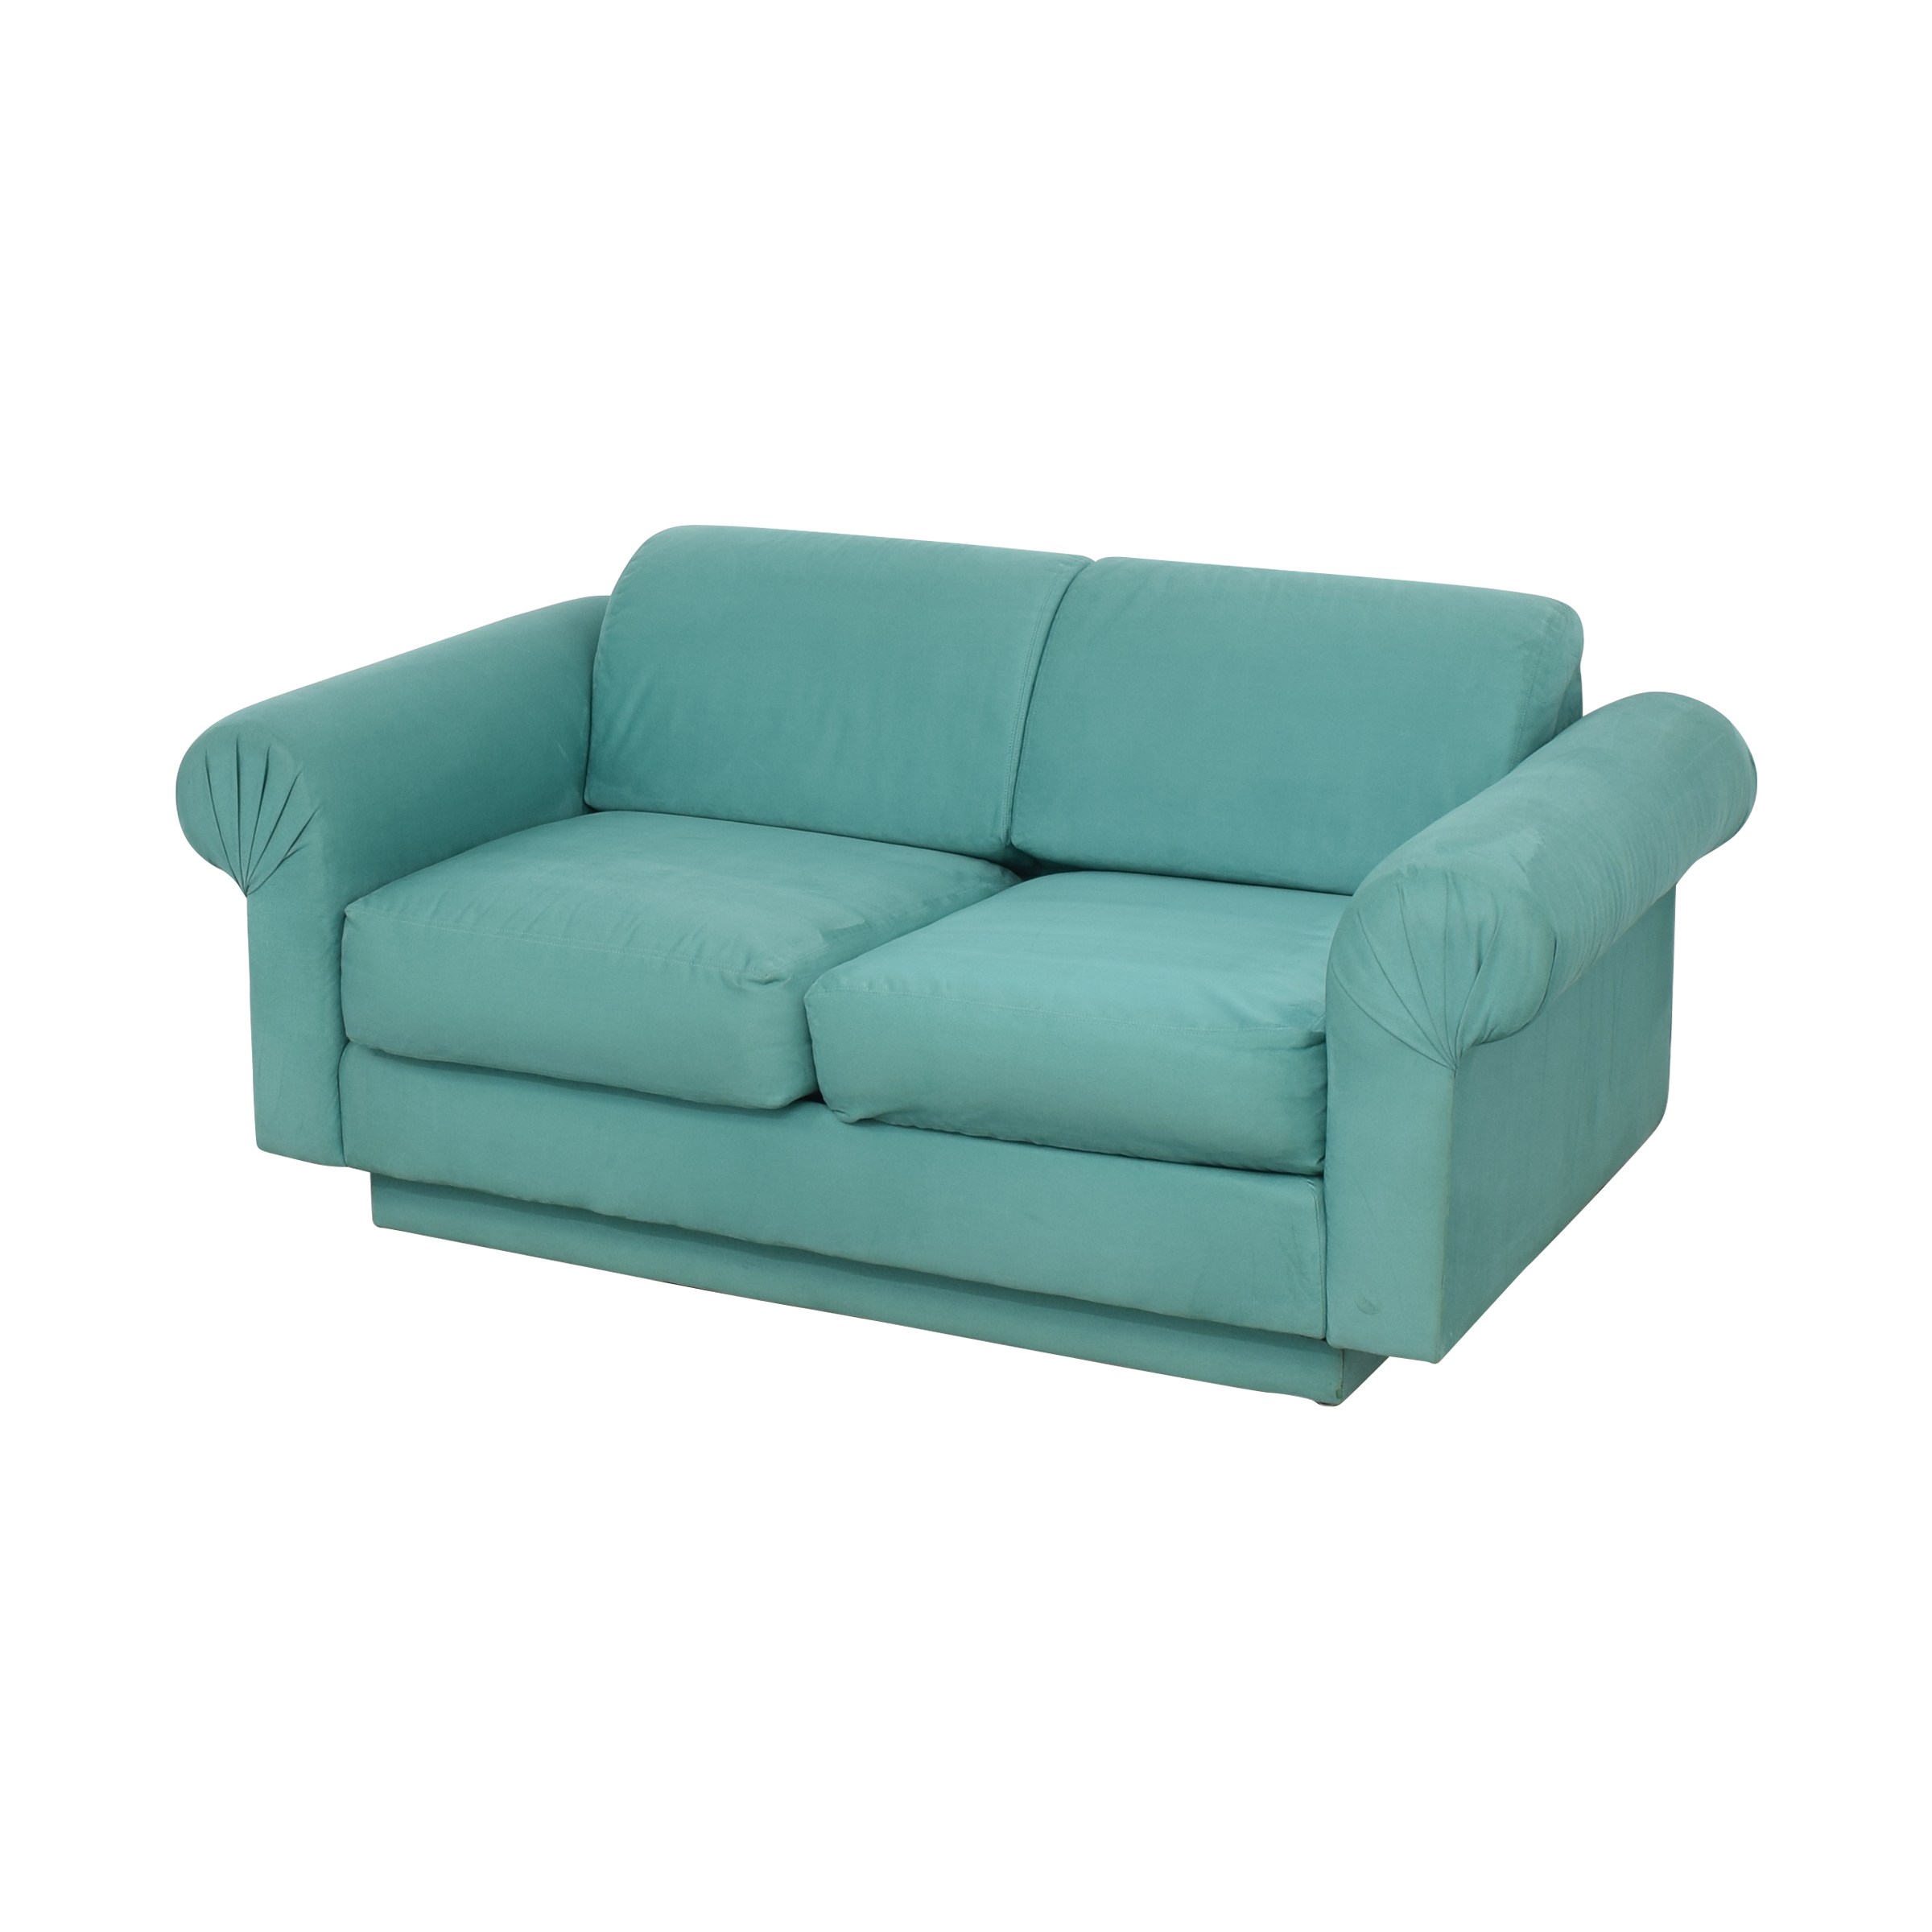 buy Directional Furniture Suede Sofa Directional Furniture Sofas